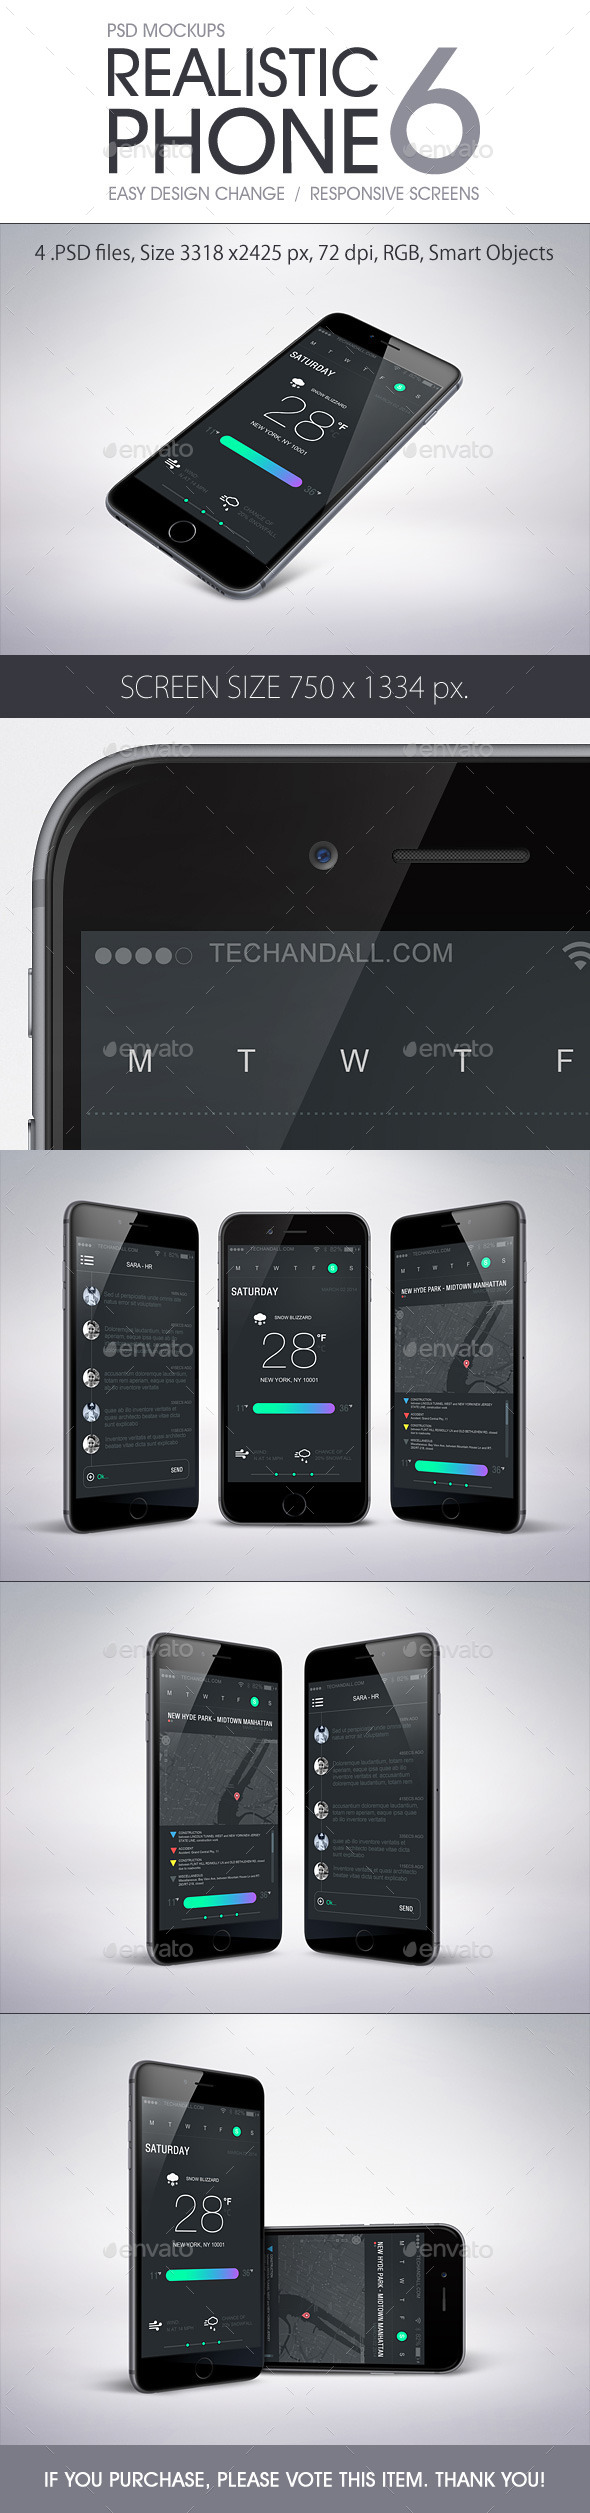 GraphicRiver Realistic Phone 6 Mockup 8971424